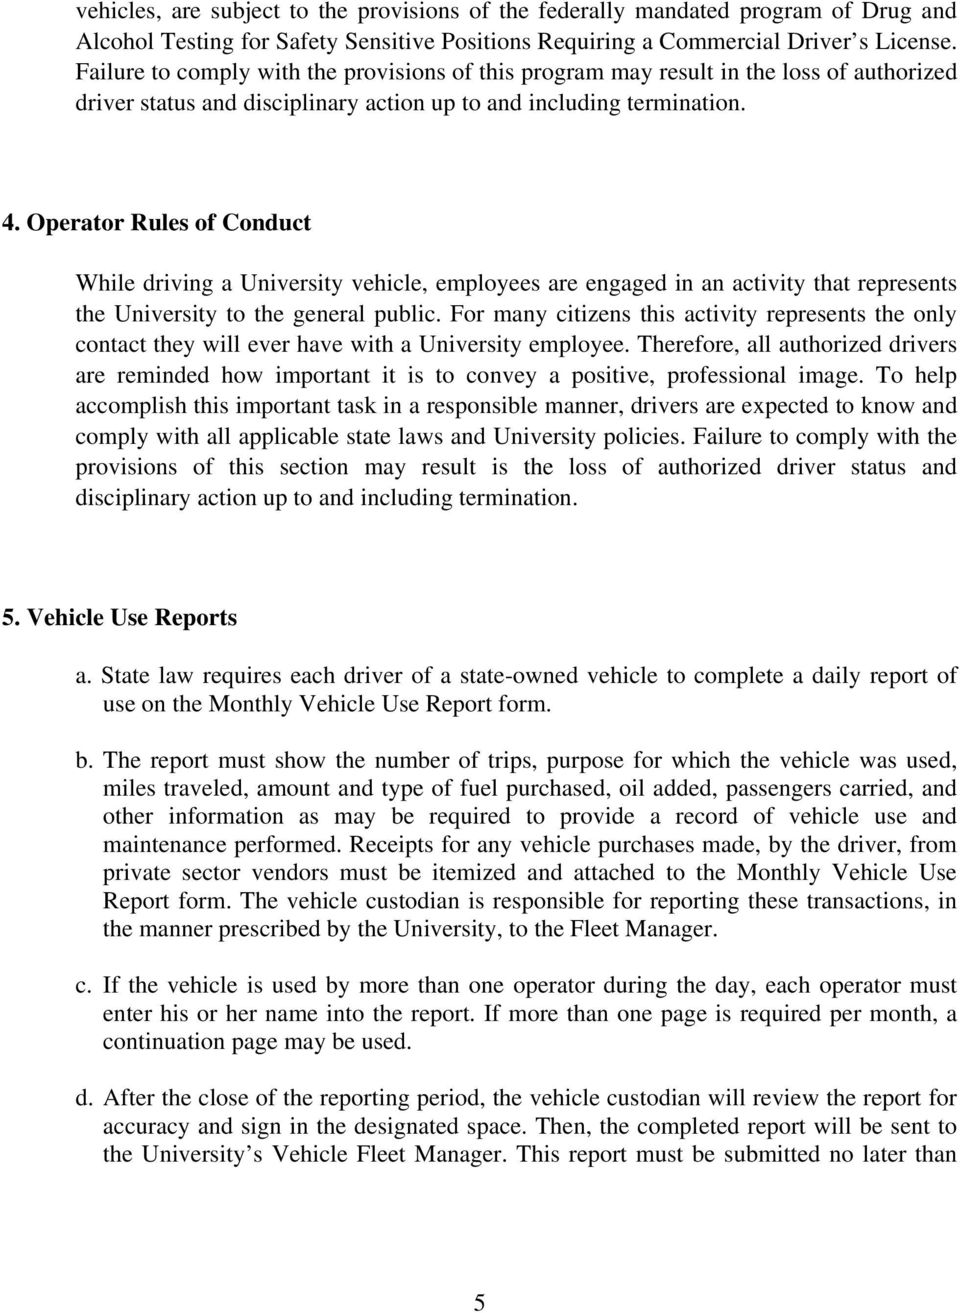 Operator Rules of Conduct While driving a University vehicle, employees are engaged in an activity that represents the University to the general public.